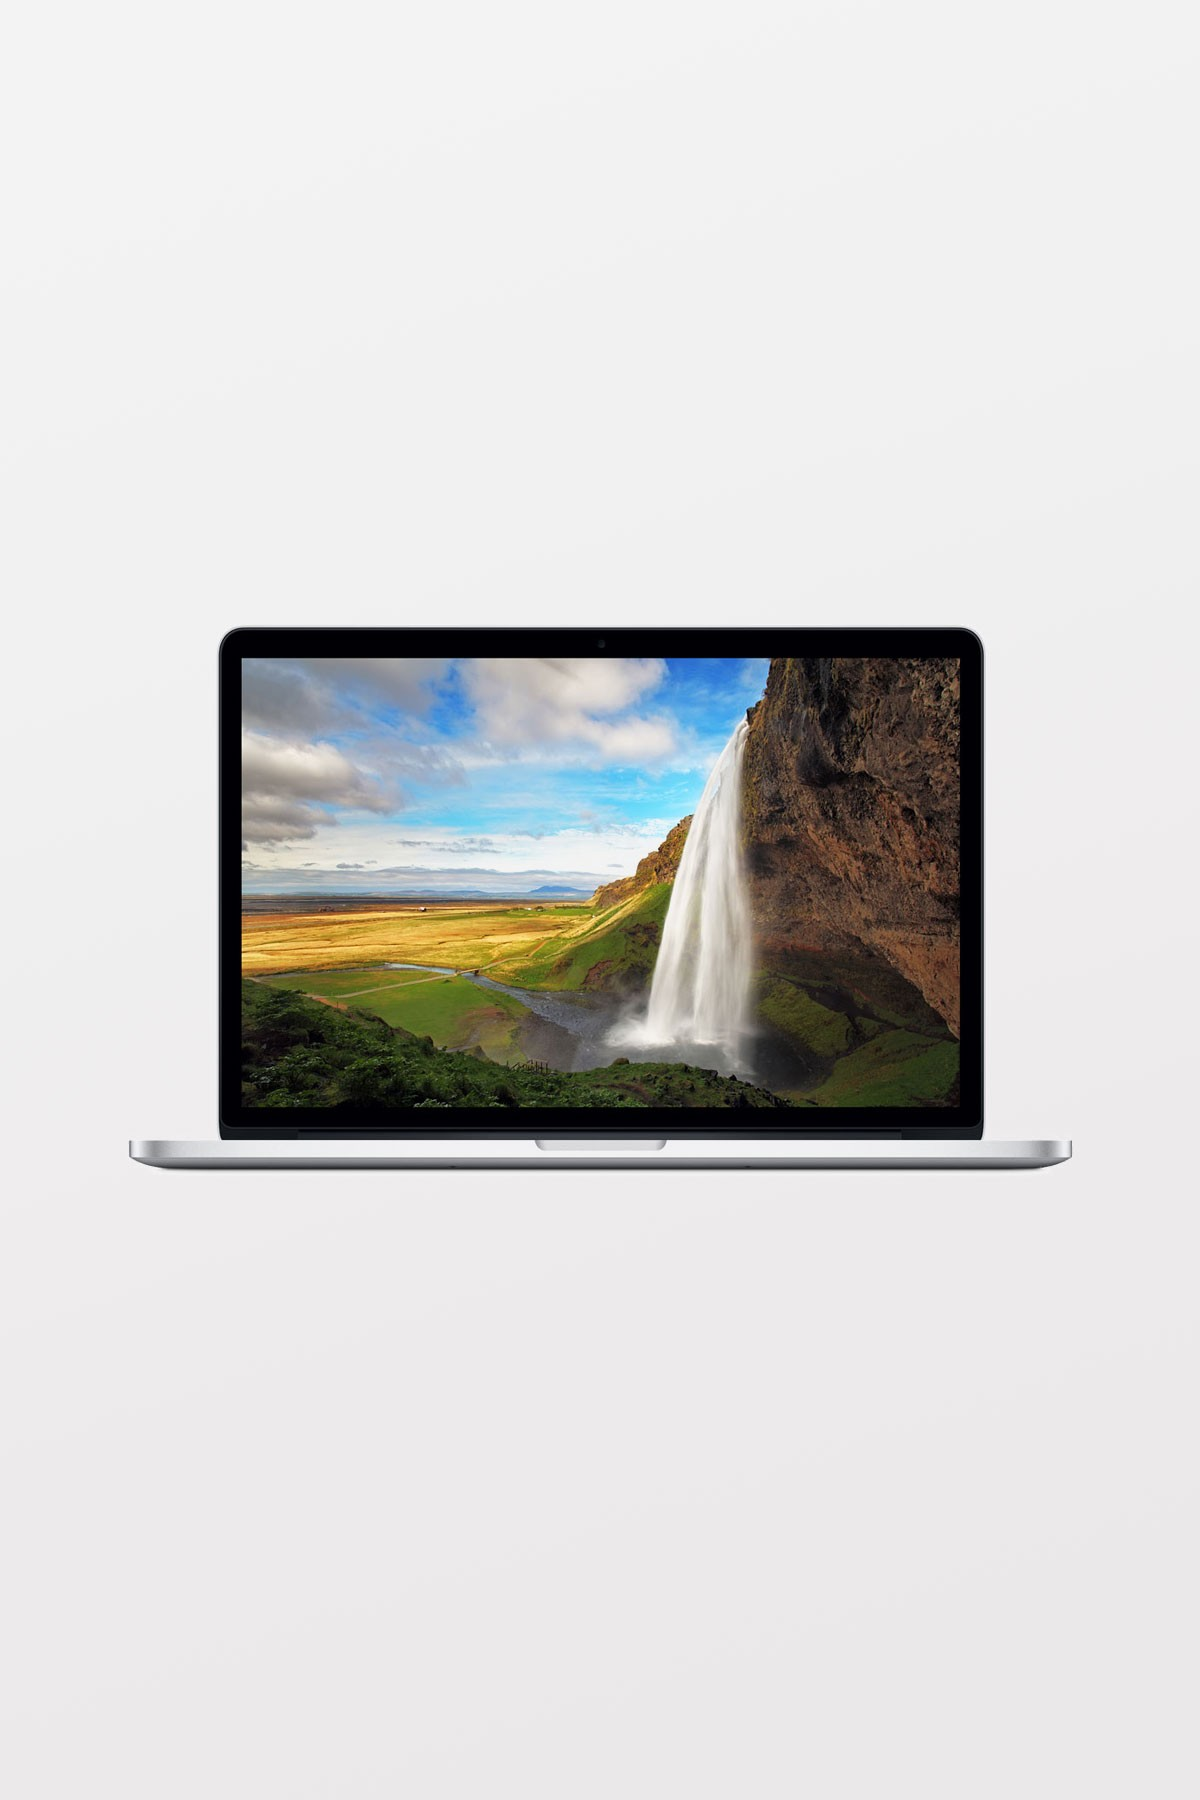 Apple MacBook Pro 15-inch (2.5GHz i7/16GB/512GB Flash/NVIDIA GeForce GT 750M 2GB) - Apple Certified Refurbished